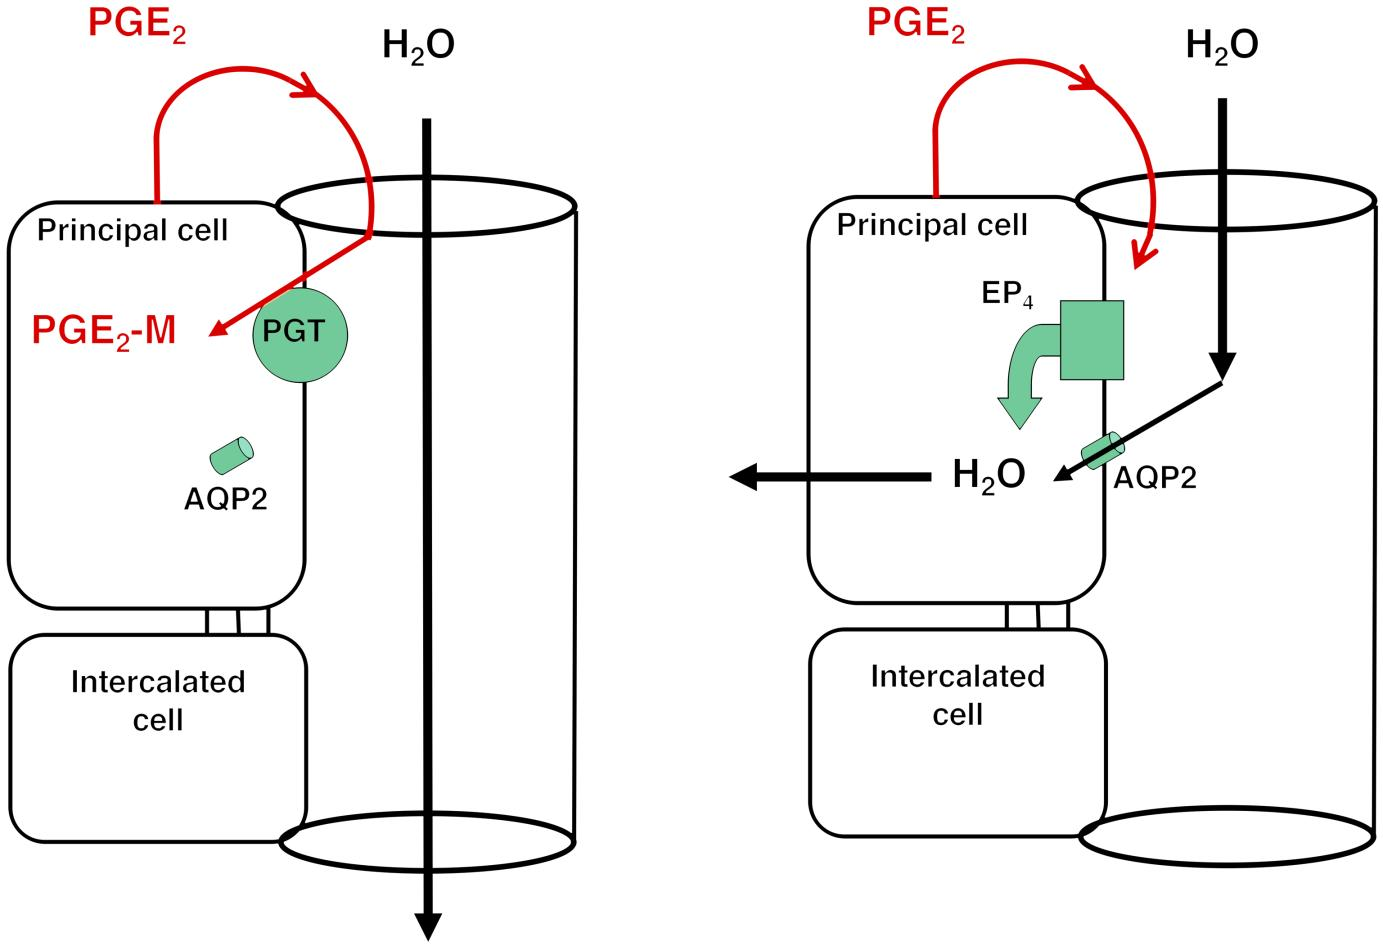 LEFT: Under low ADH conditions, apical PGT in the renal collecting duct scavenges PGE2 from the lumen, resulting in AQP2 internalization and minimal osmotic water reabsorption.  RIGHT: With reduced or absent apical PGT, PGE2 reaching the lumen is able to stimulate apical EP4 receptors, resulting in insertion of AQP2 and osmotic water reabsorption.